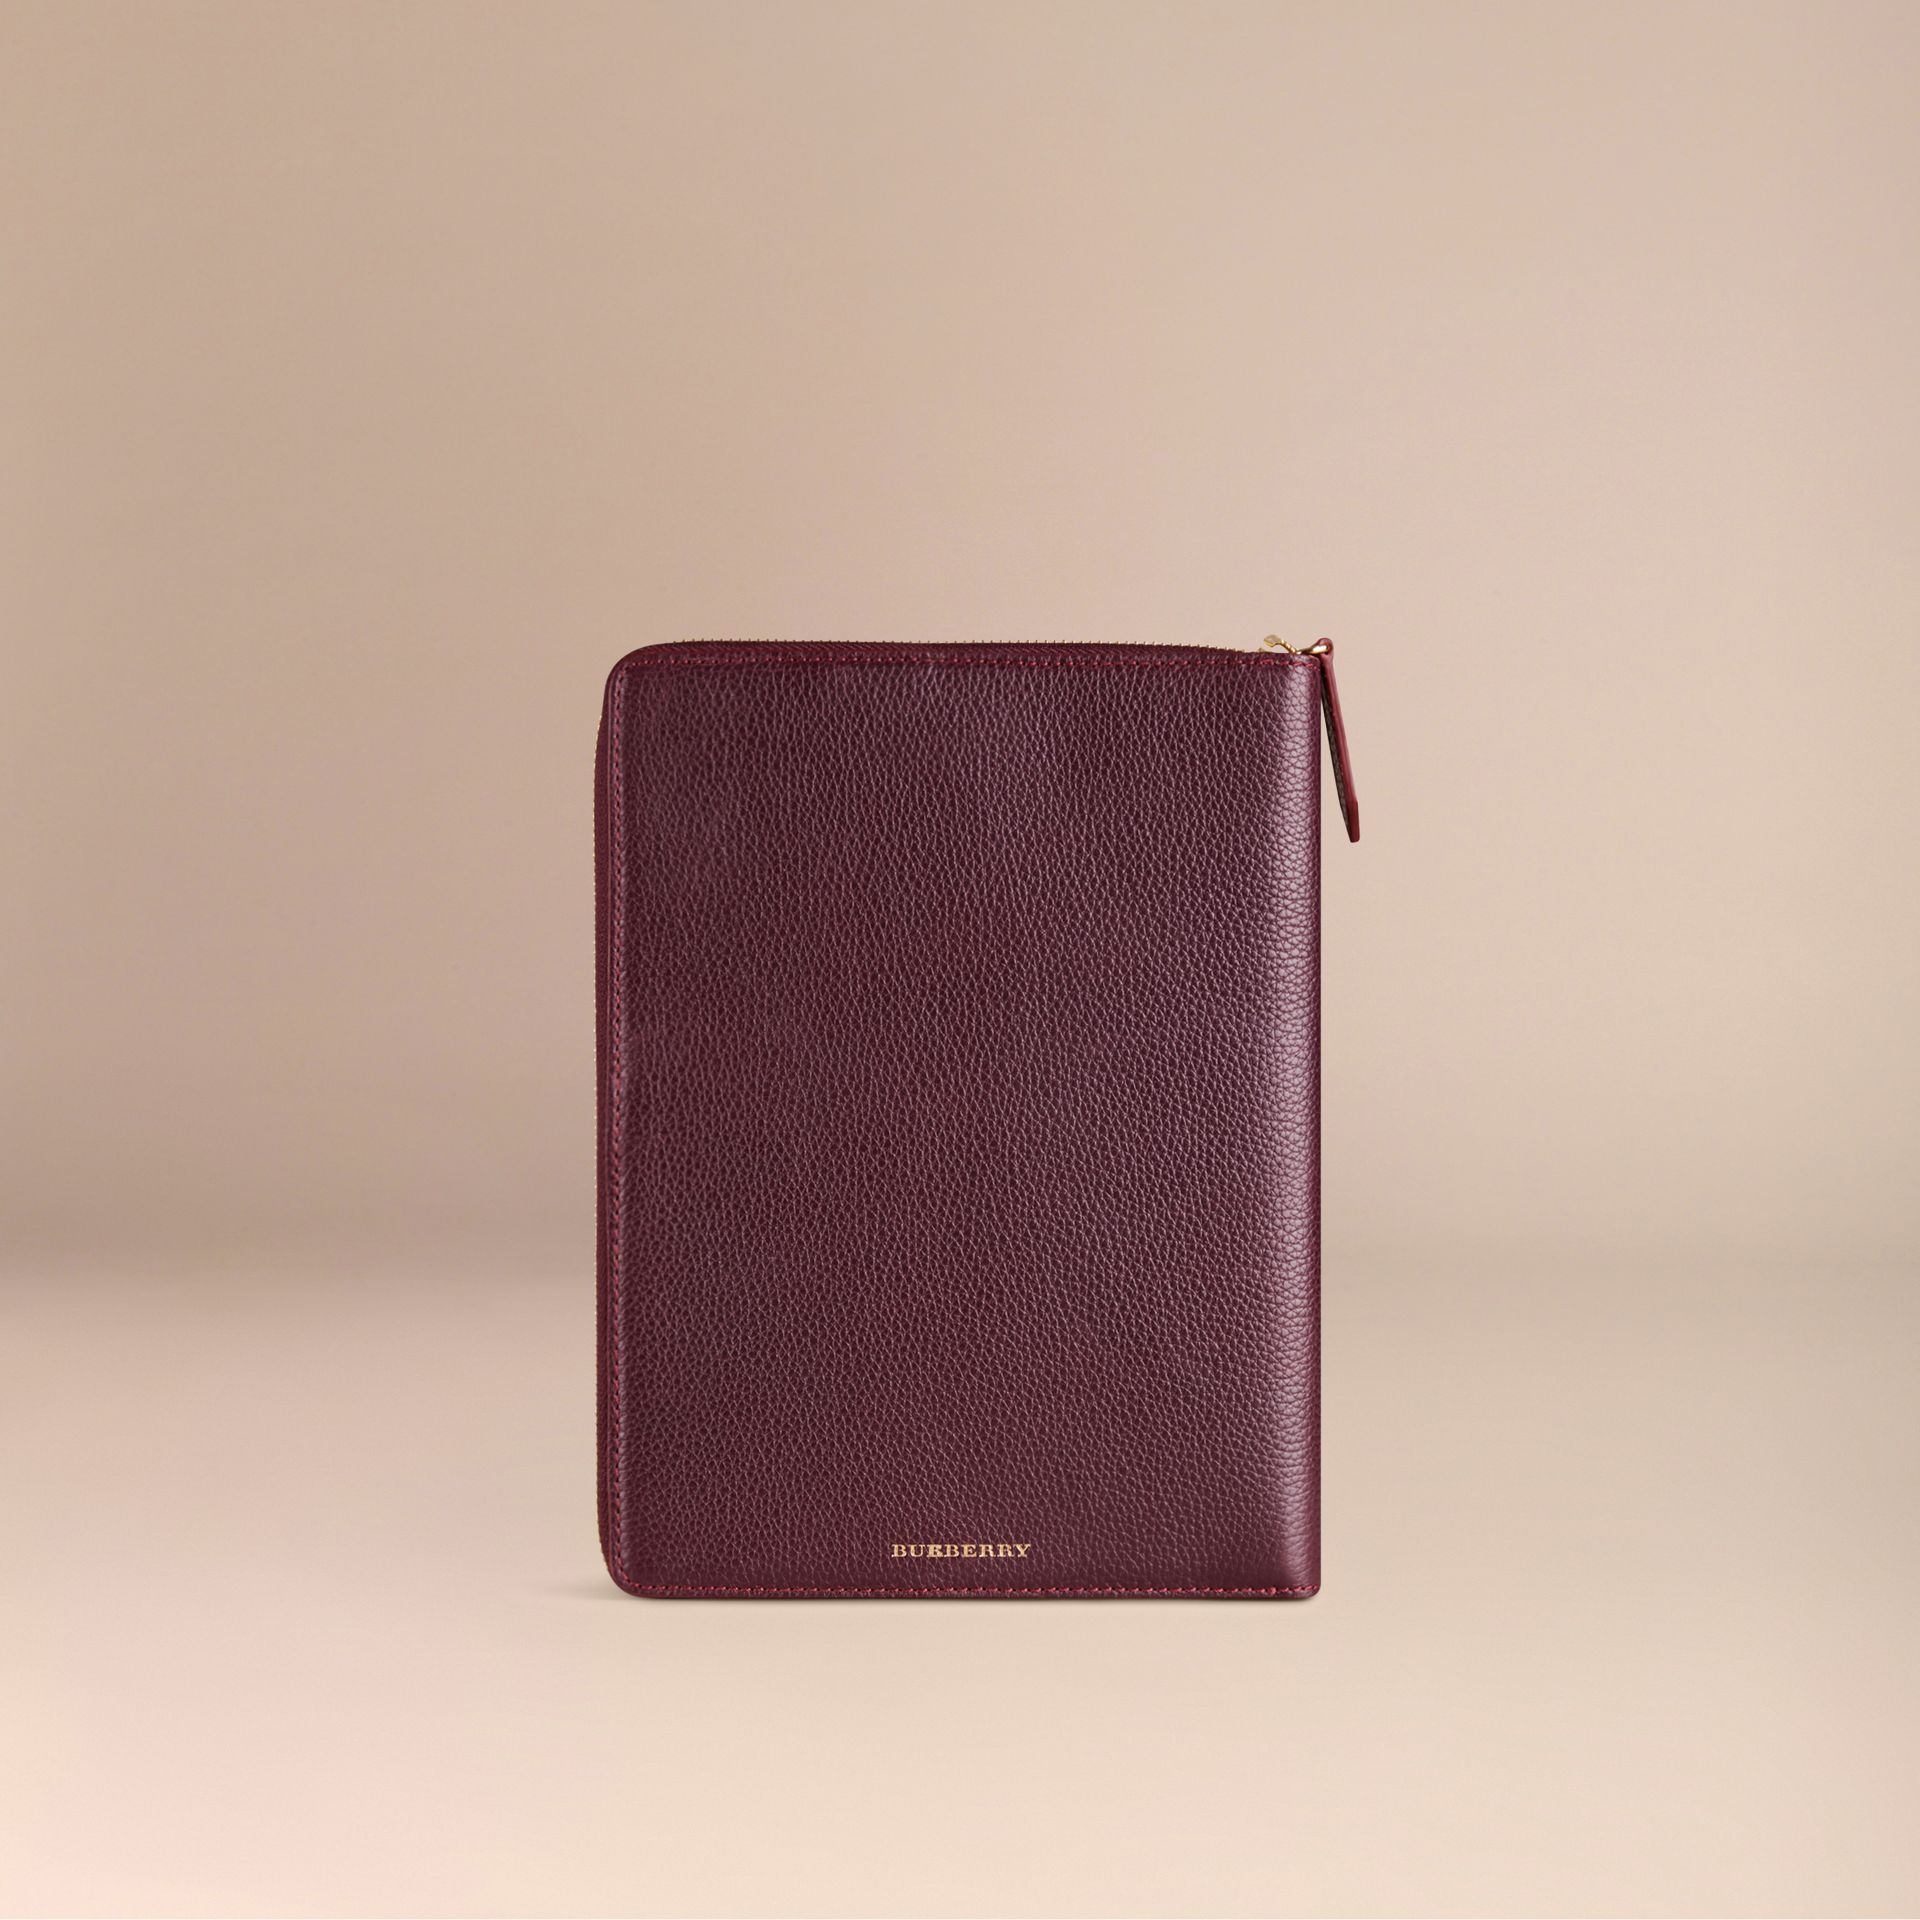 Ziparound Grainy Leather 18 Month 2016/17 A5 Diary in Dark Amethyst | Burberry - gallery image 3